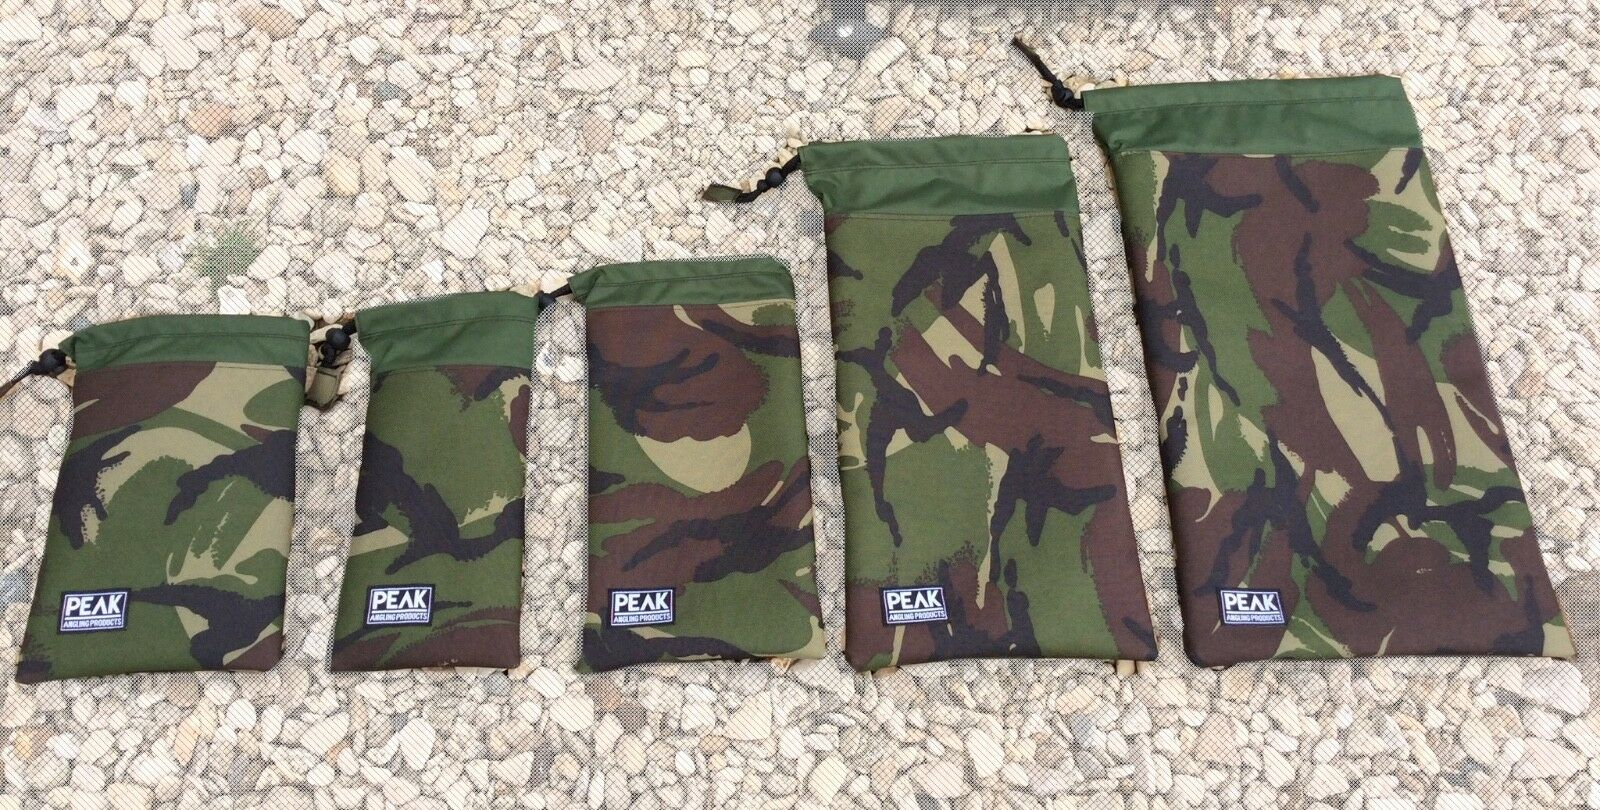 Bits bag set made from Cordura camo pattern fabric